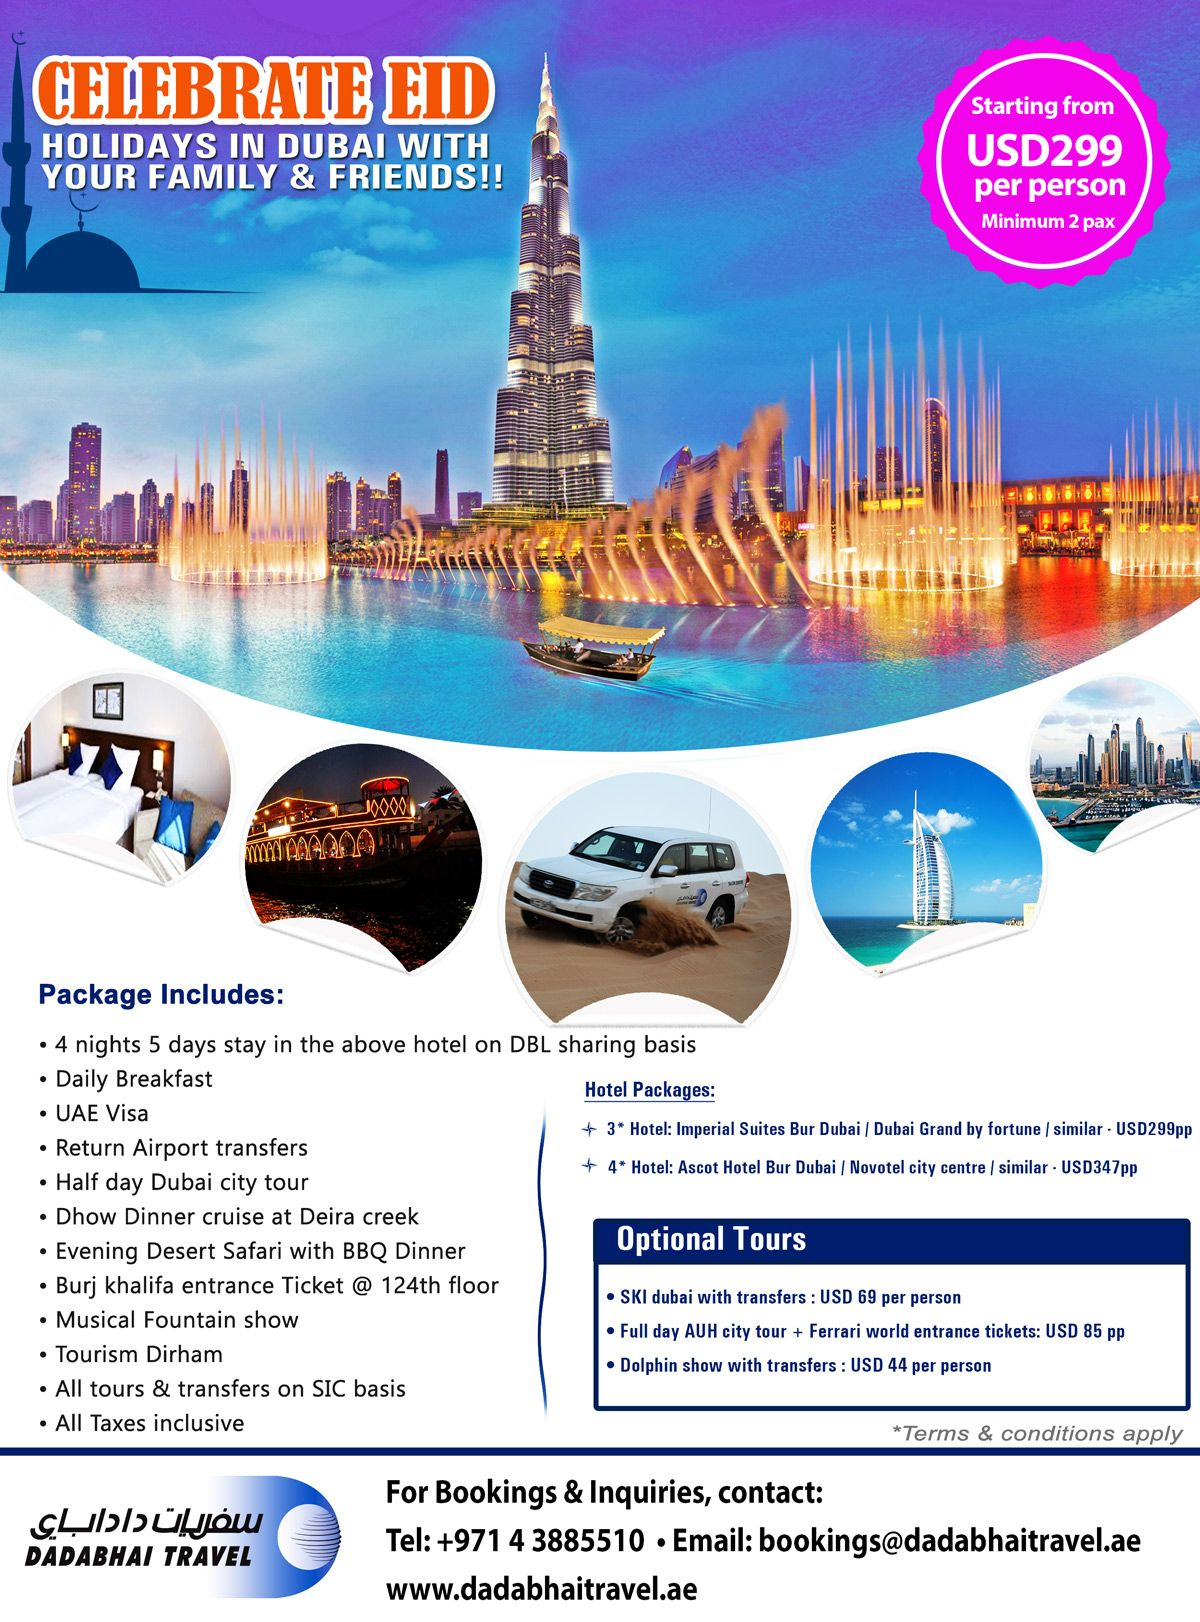 Celebrate EID Holidays in Dubai with Your Family & Friends